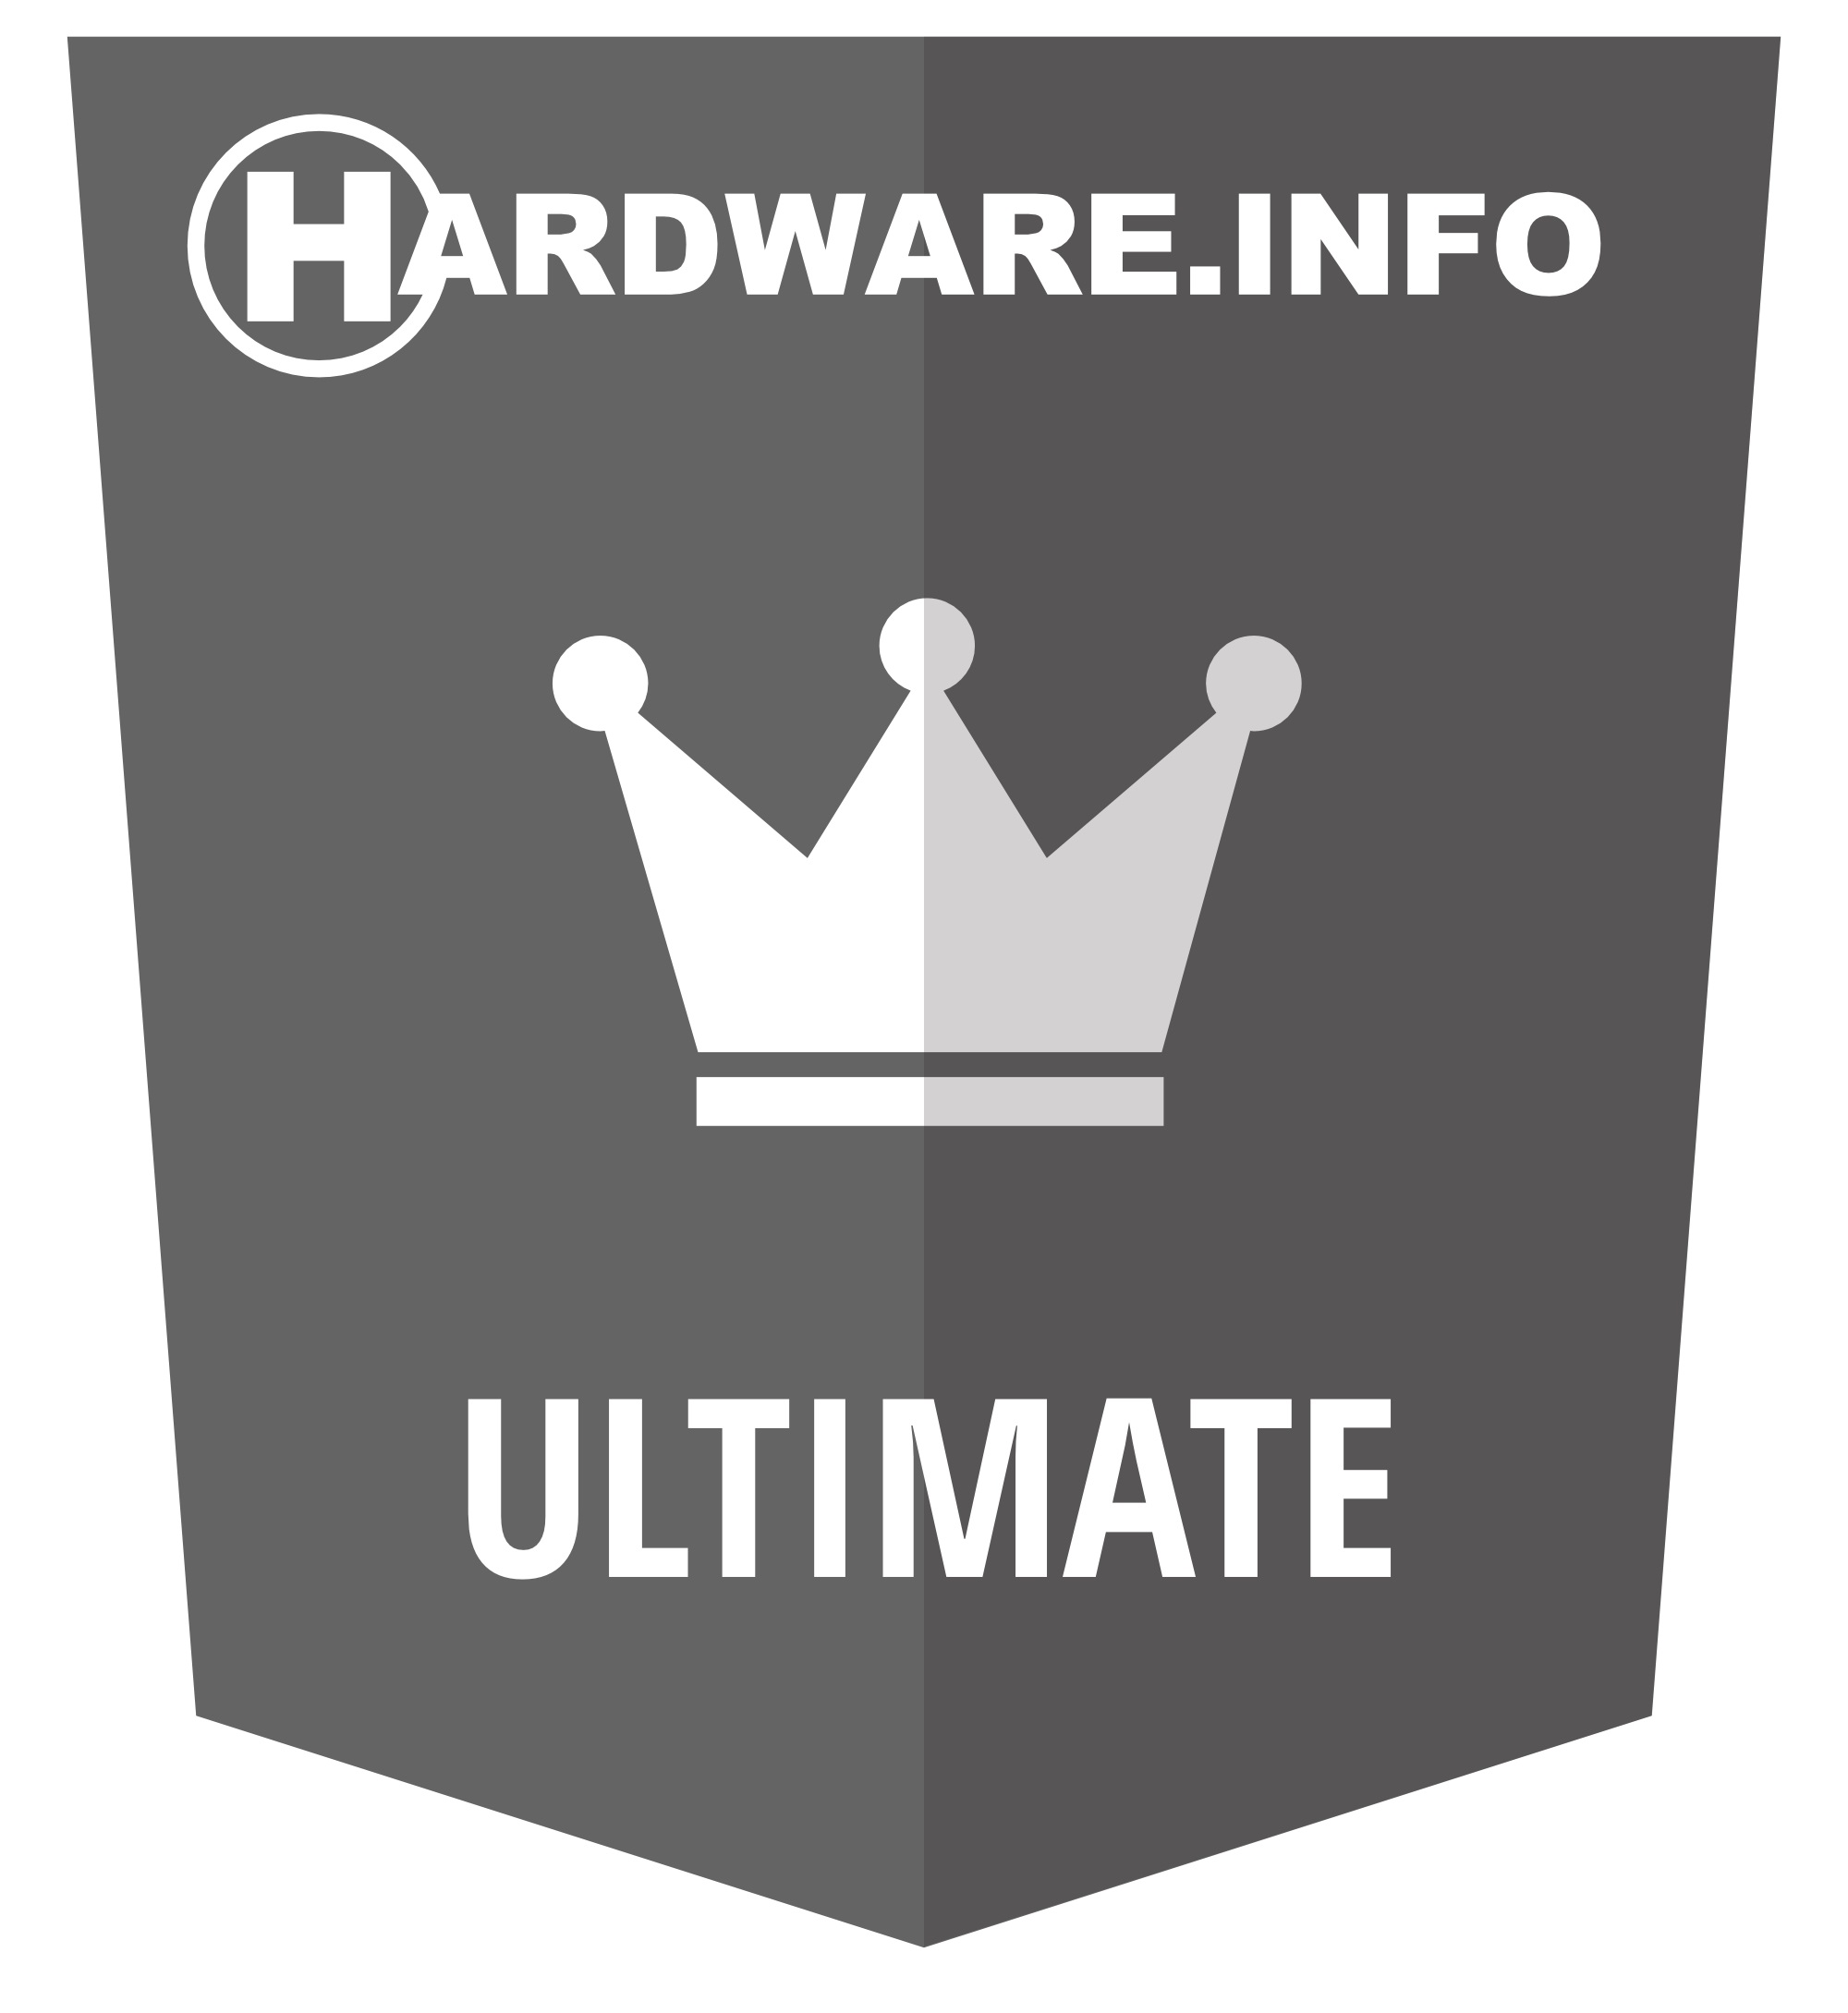 HWI ultimate award